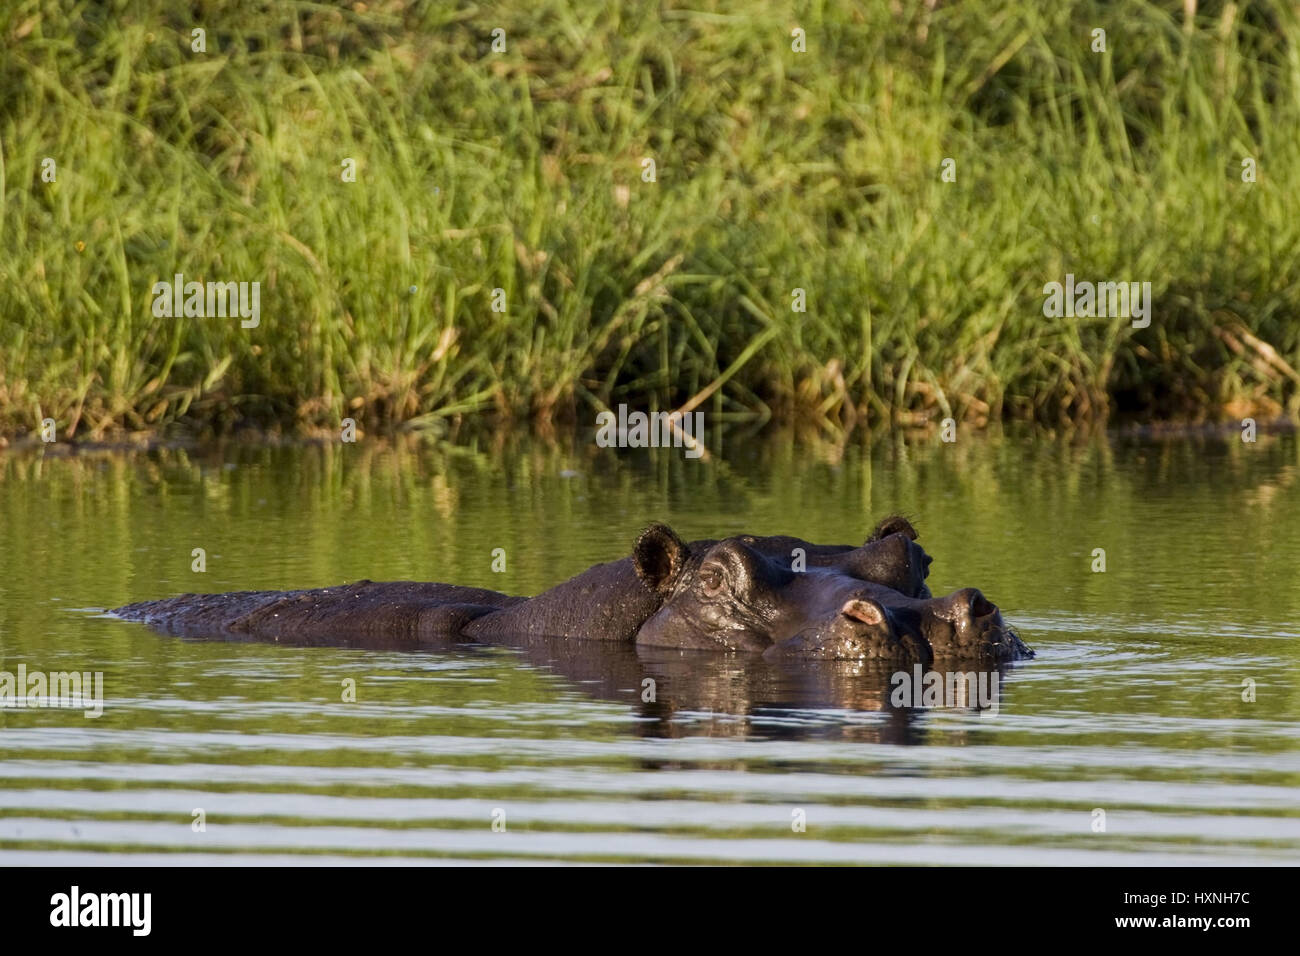 Hippopotamus, Hippopotamus amphibius - Hippopotamus , Flusspferd | Hippopotamus amphibius - Hippopotamus   schwimmend - Stock Image